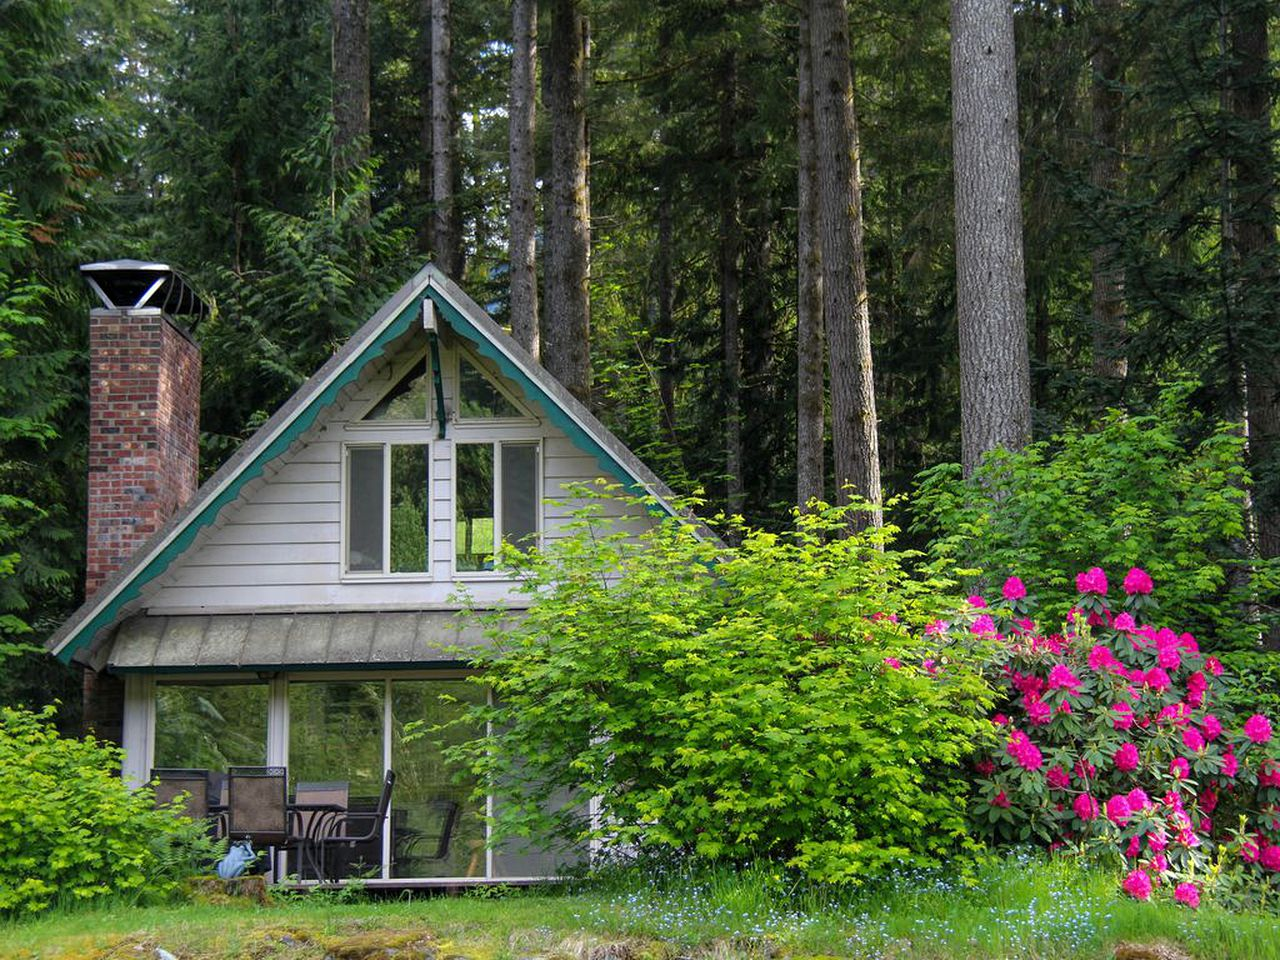 Cabins (Skykomish, Washington, United States)